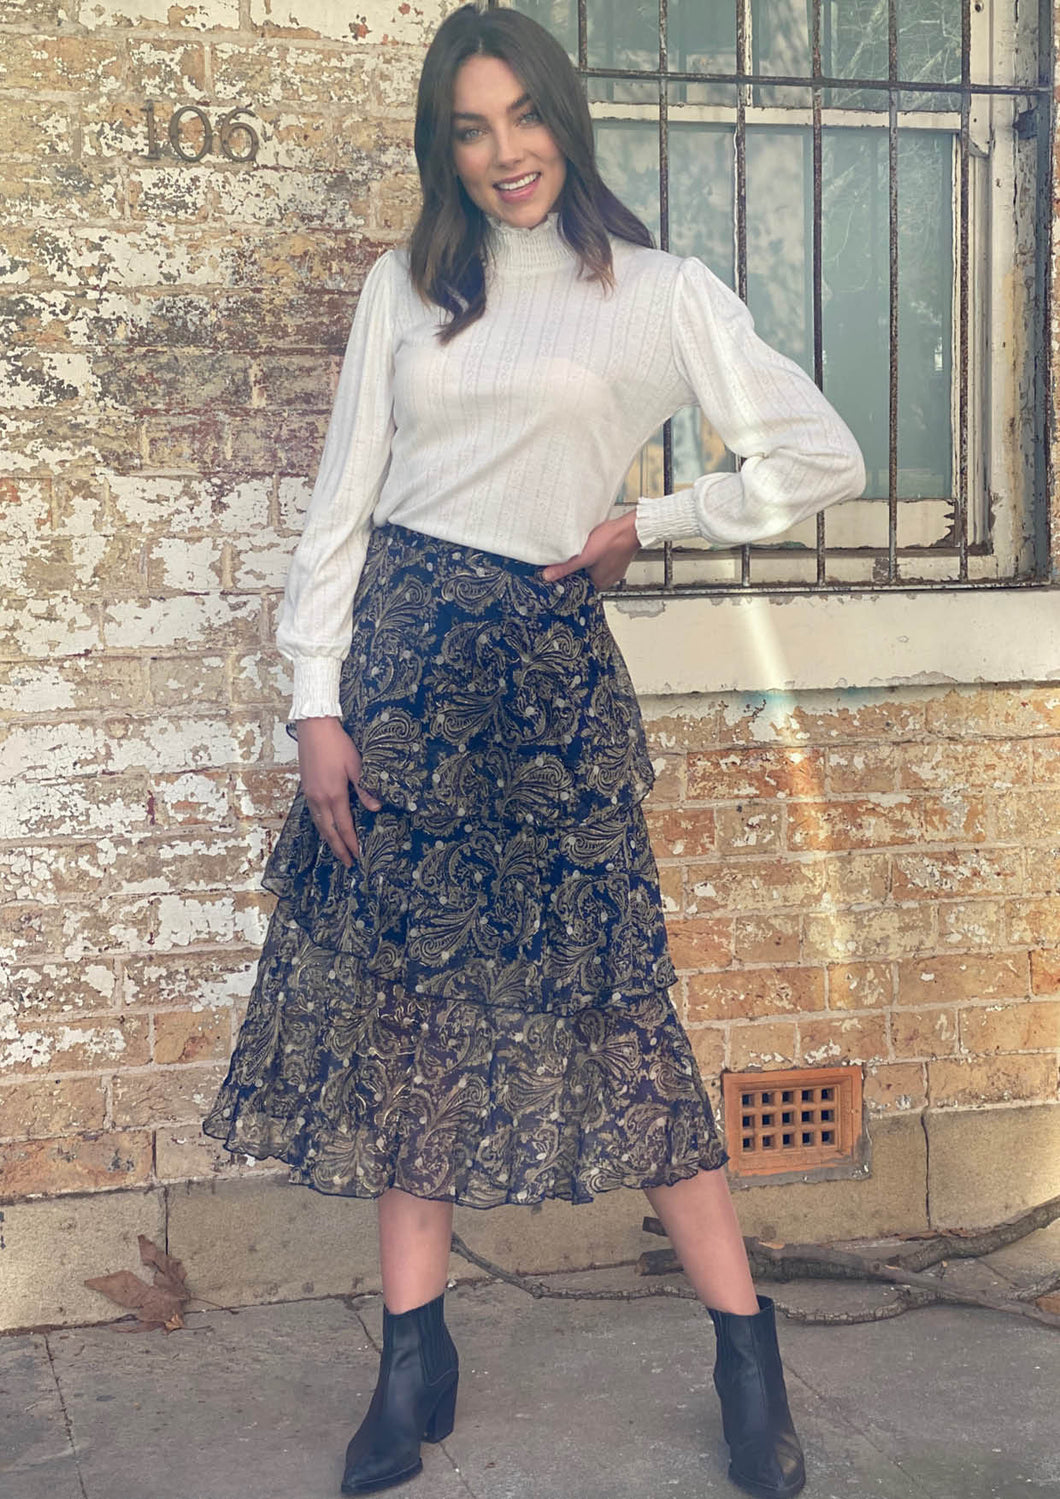 LA0211-2SS Paisley Print Skirt (Pack) New Arrivals